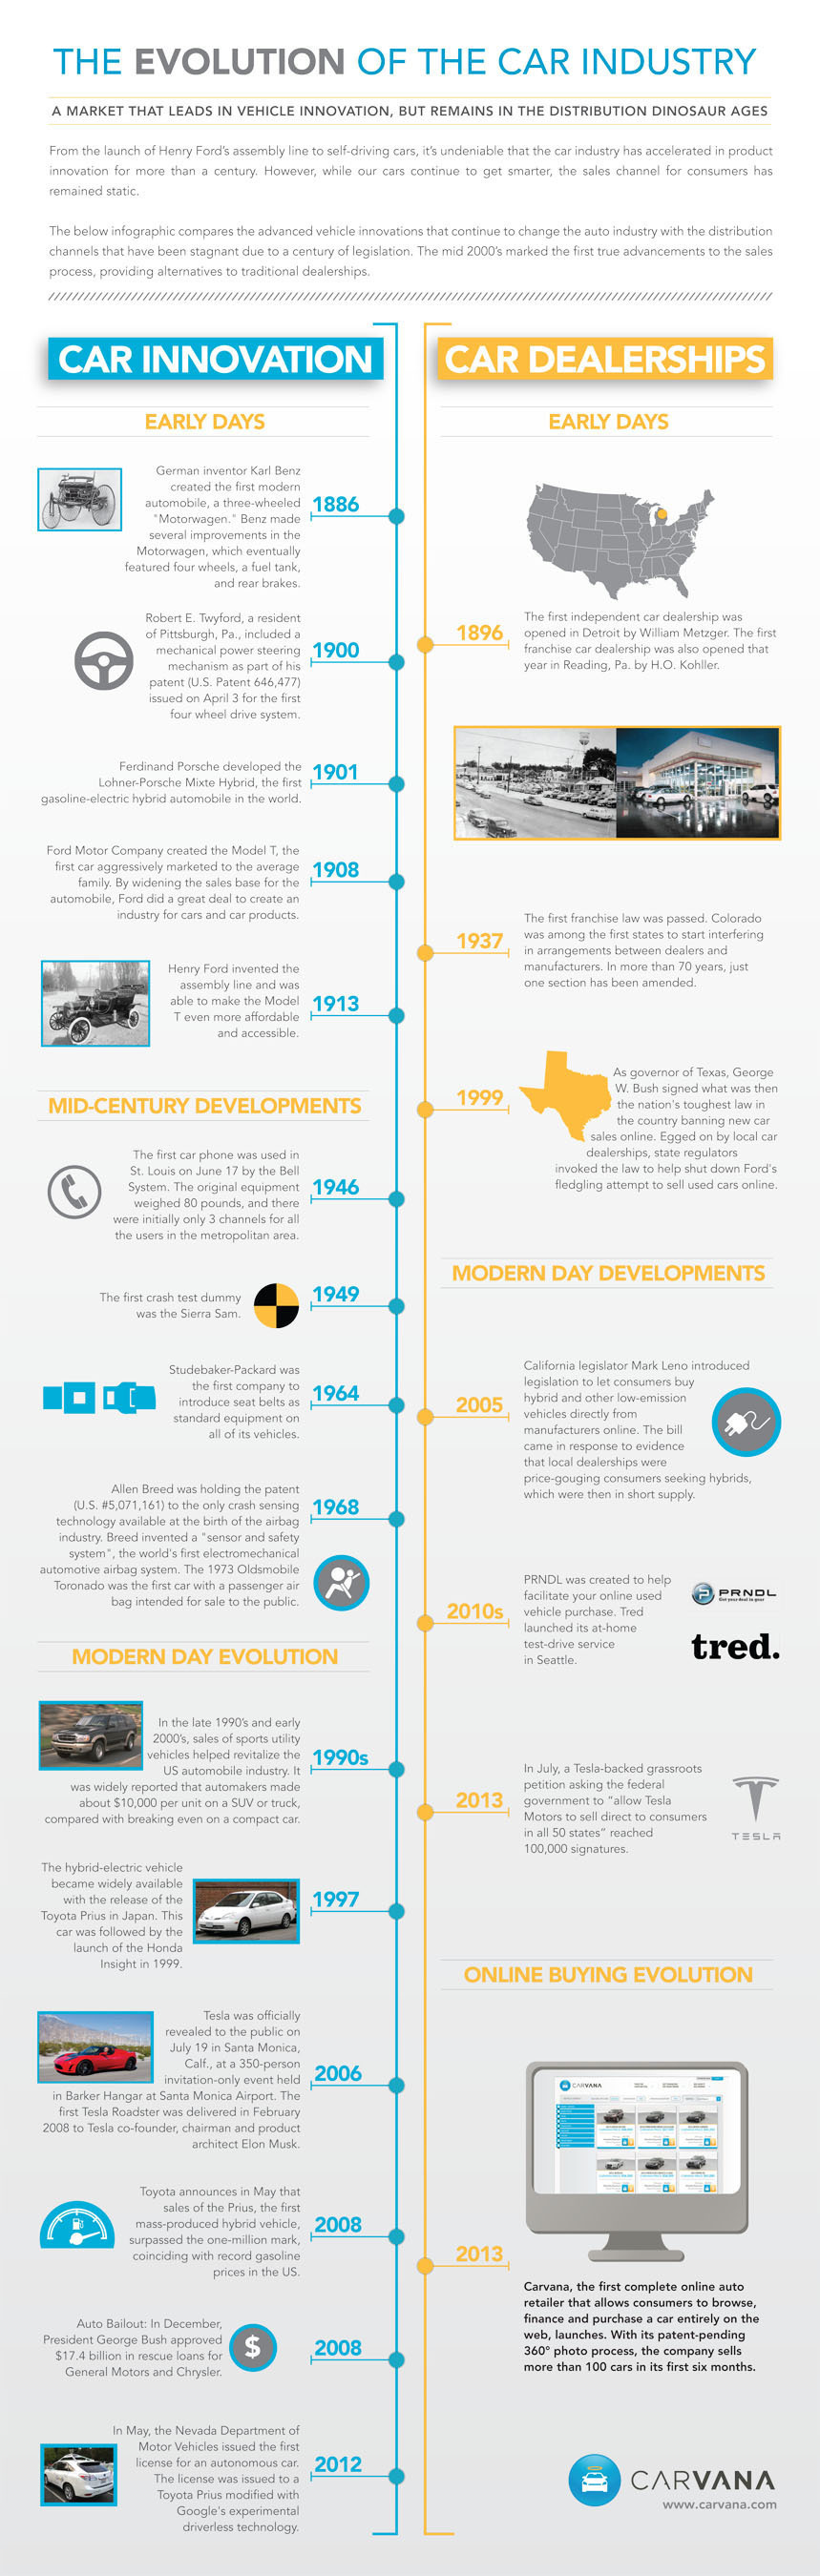 Infographic: The Evolution Of The Car Industry Online Auto Retailer, Carvana, Unmasks a Market That Leads in Vehicle Innovation, While Remains Decades Behind In Sales Channel Modernization.  (PRNewsFoto/Carvana)